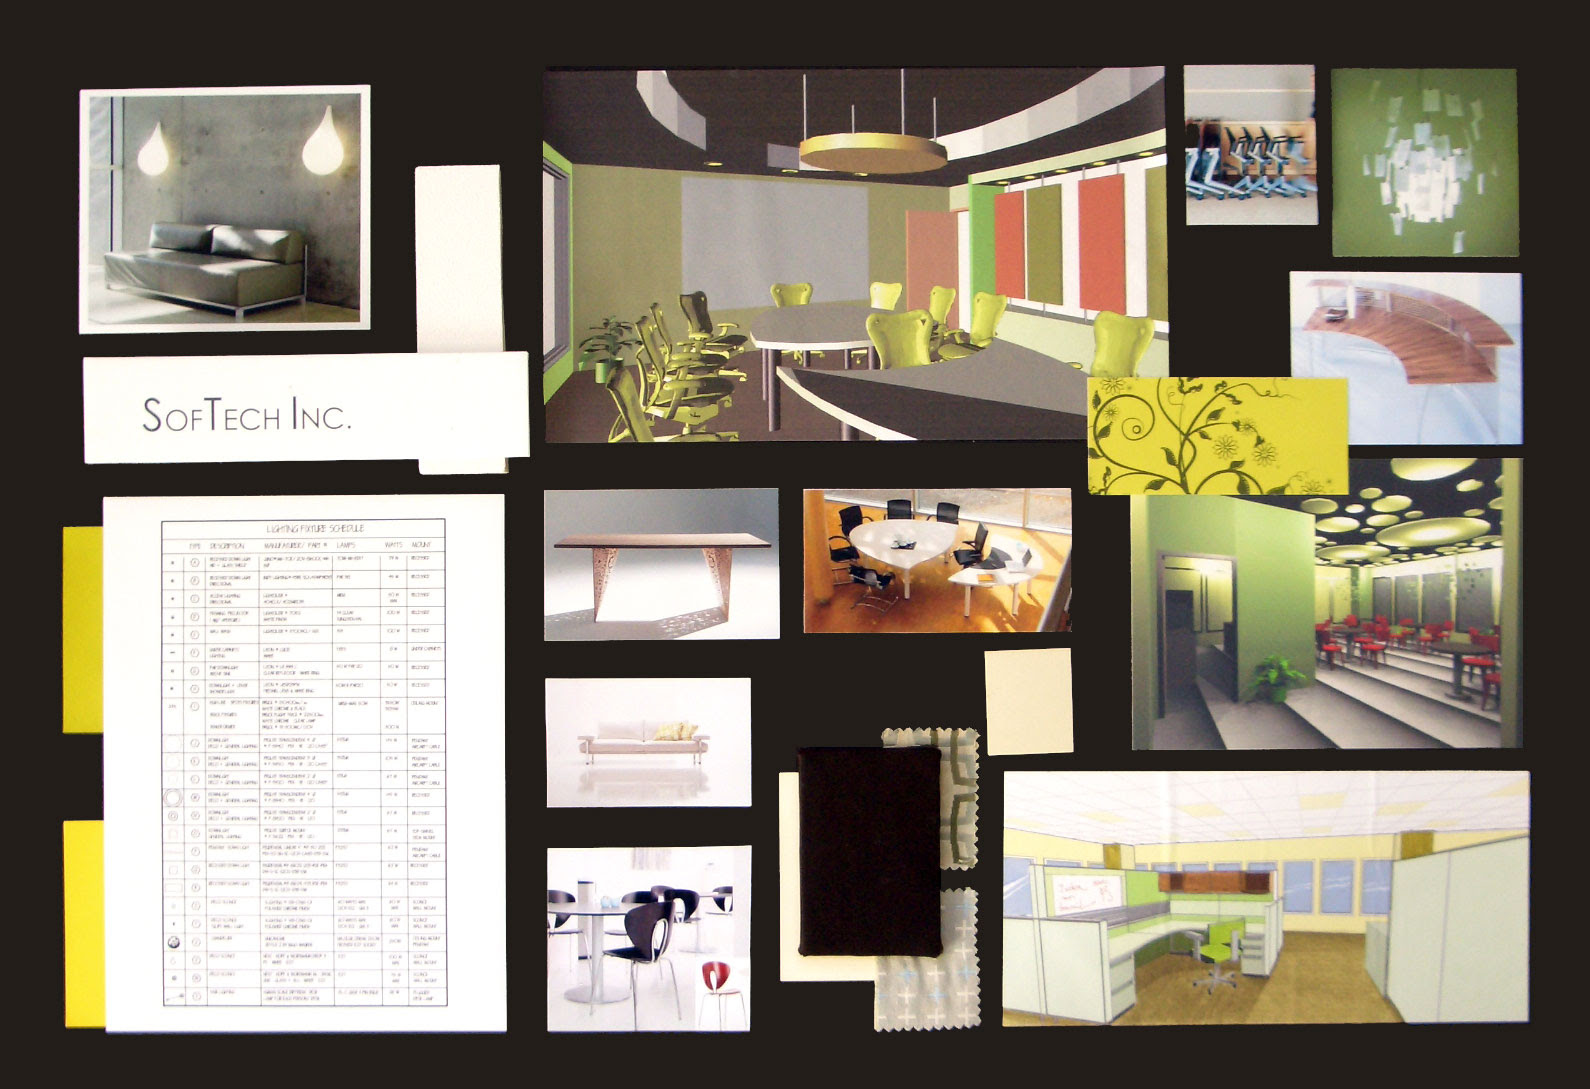 Design concept office space design concept office space olivia interior design